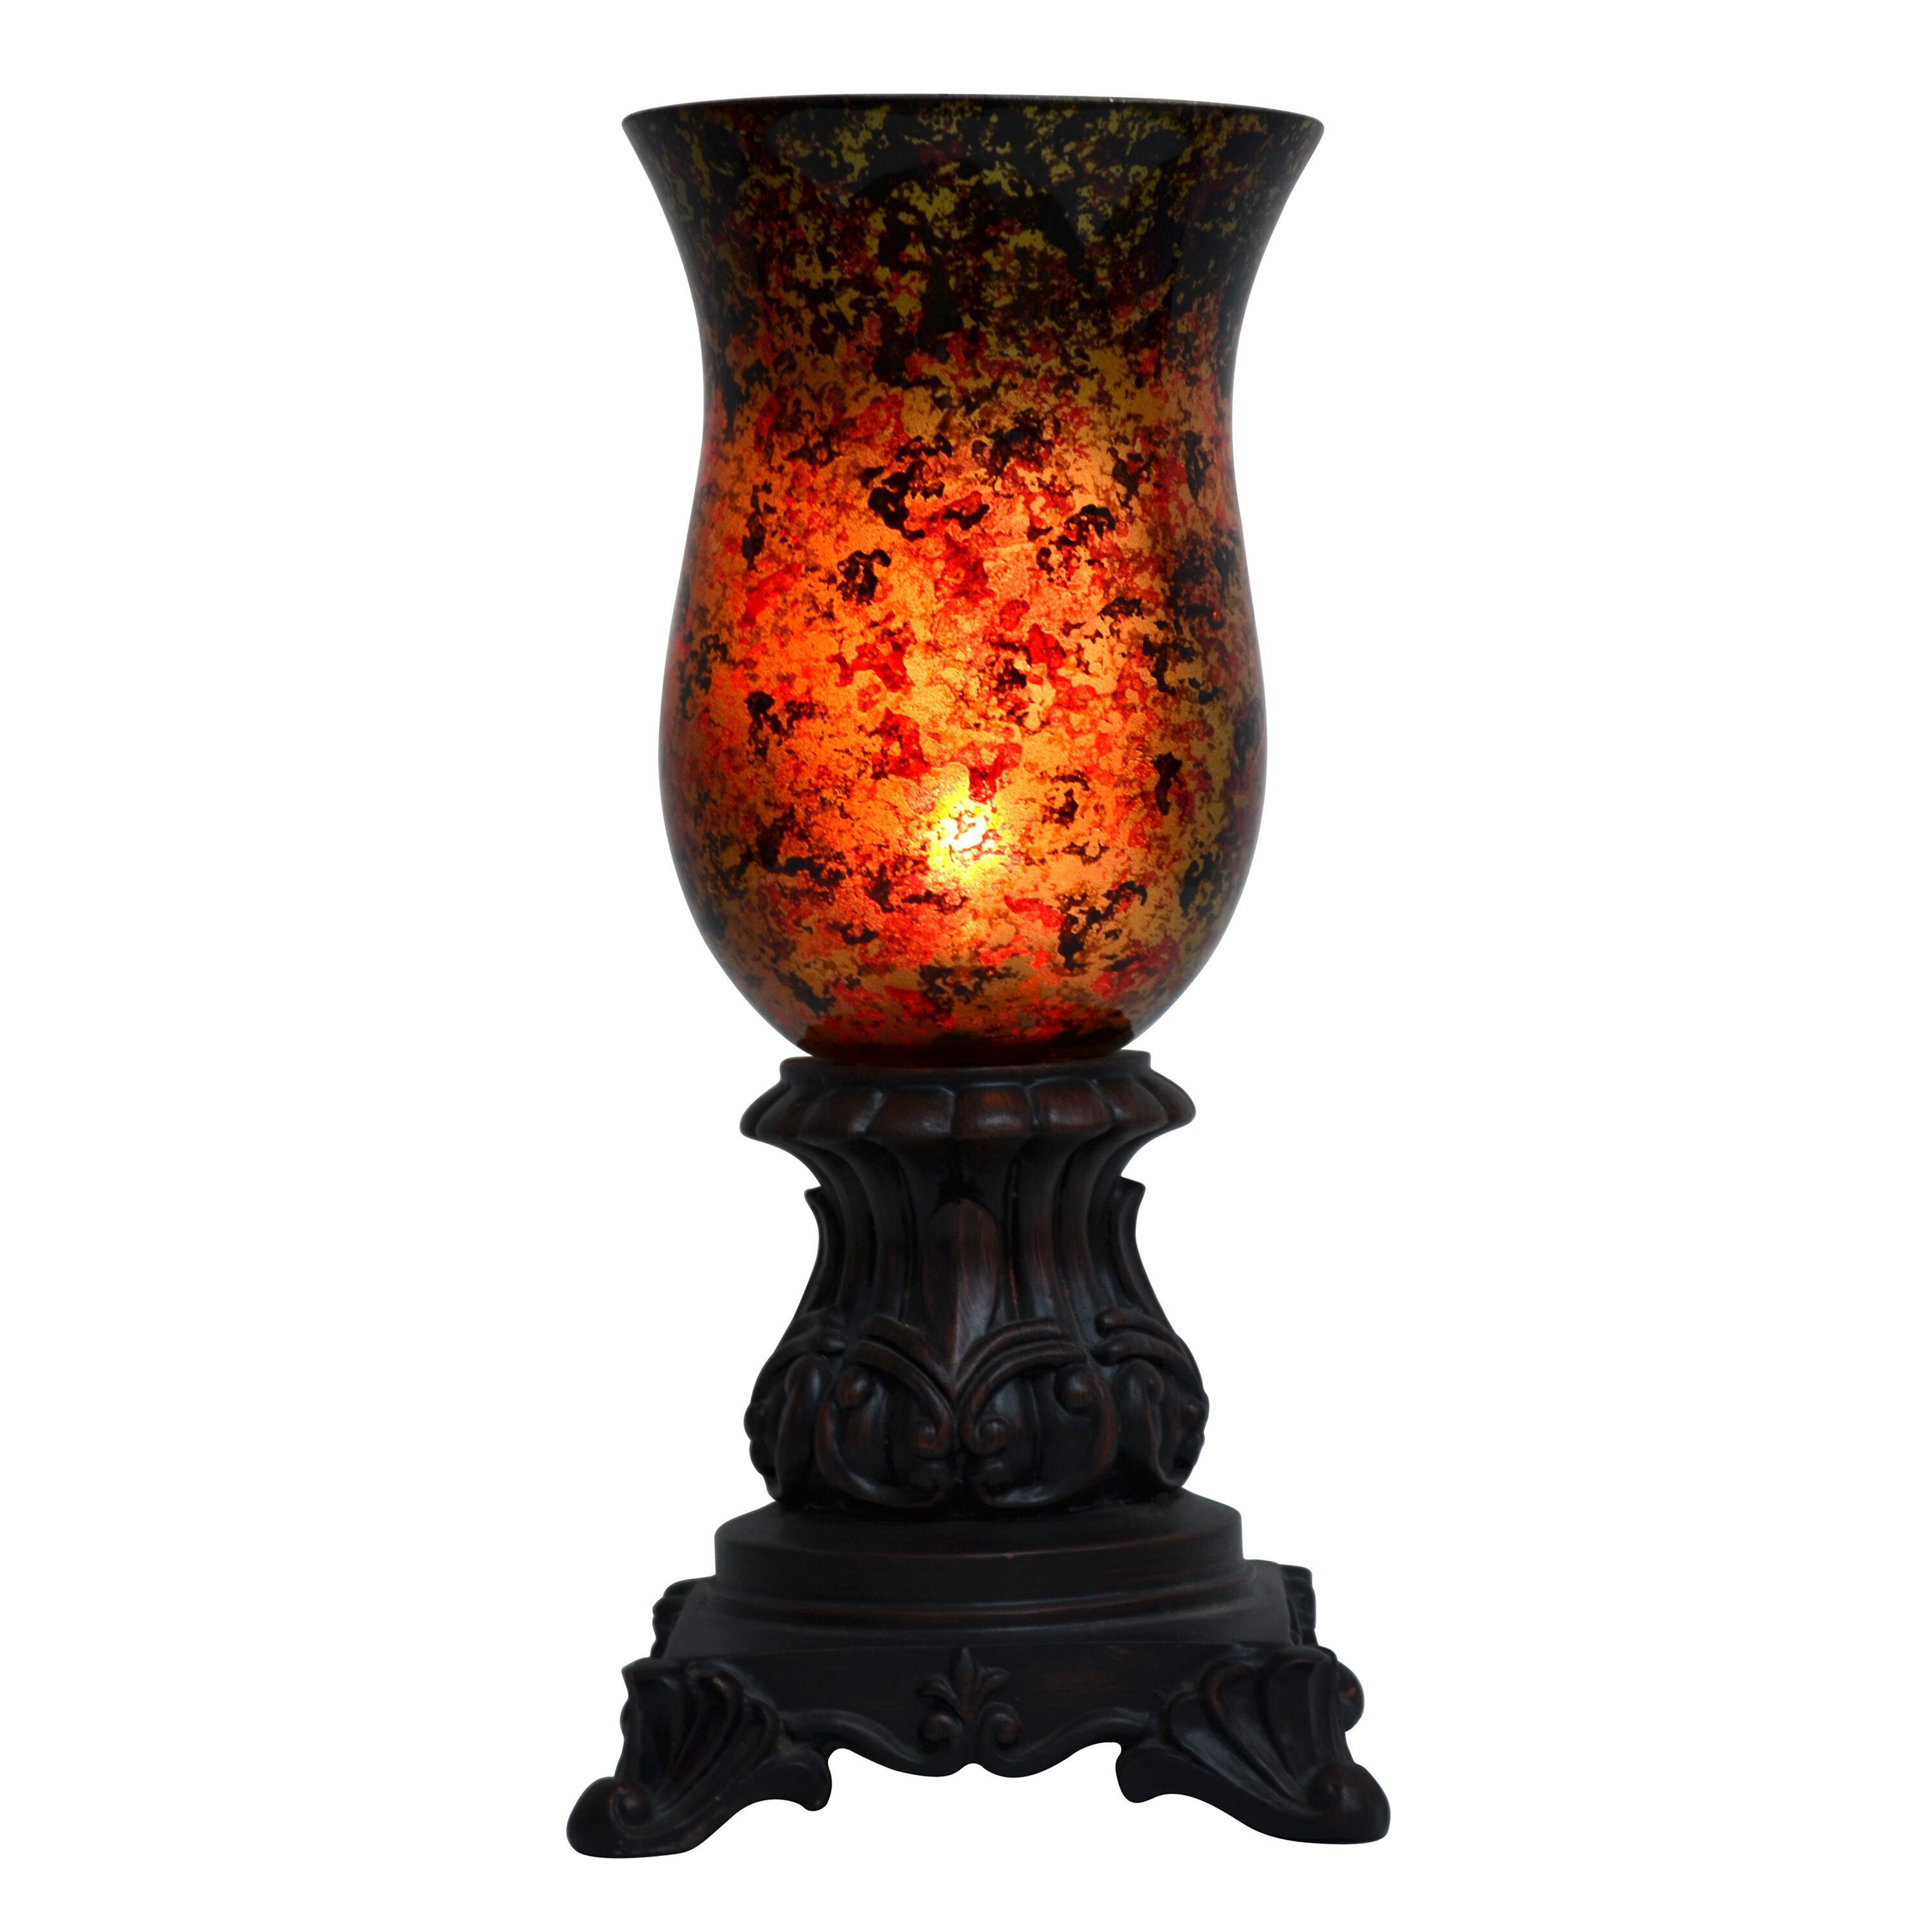 Decor therapy uplight table lamp reviews for Decor therapy